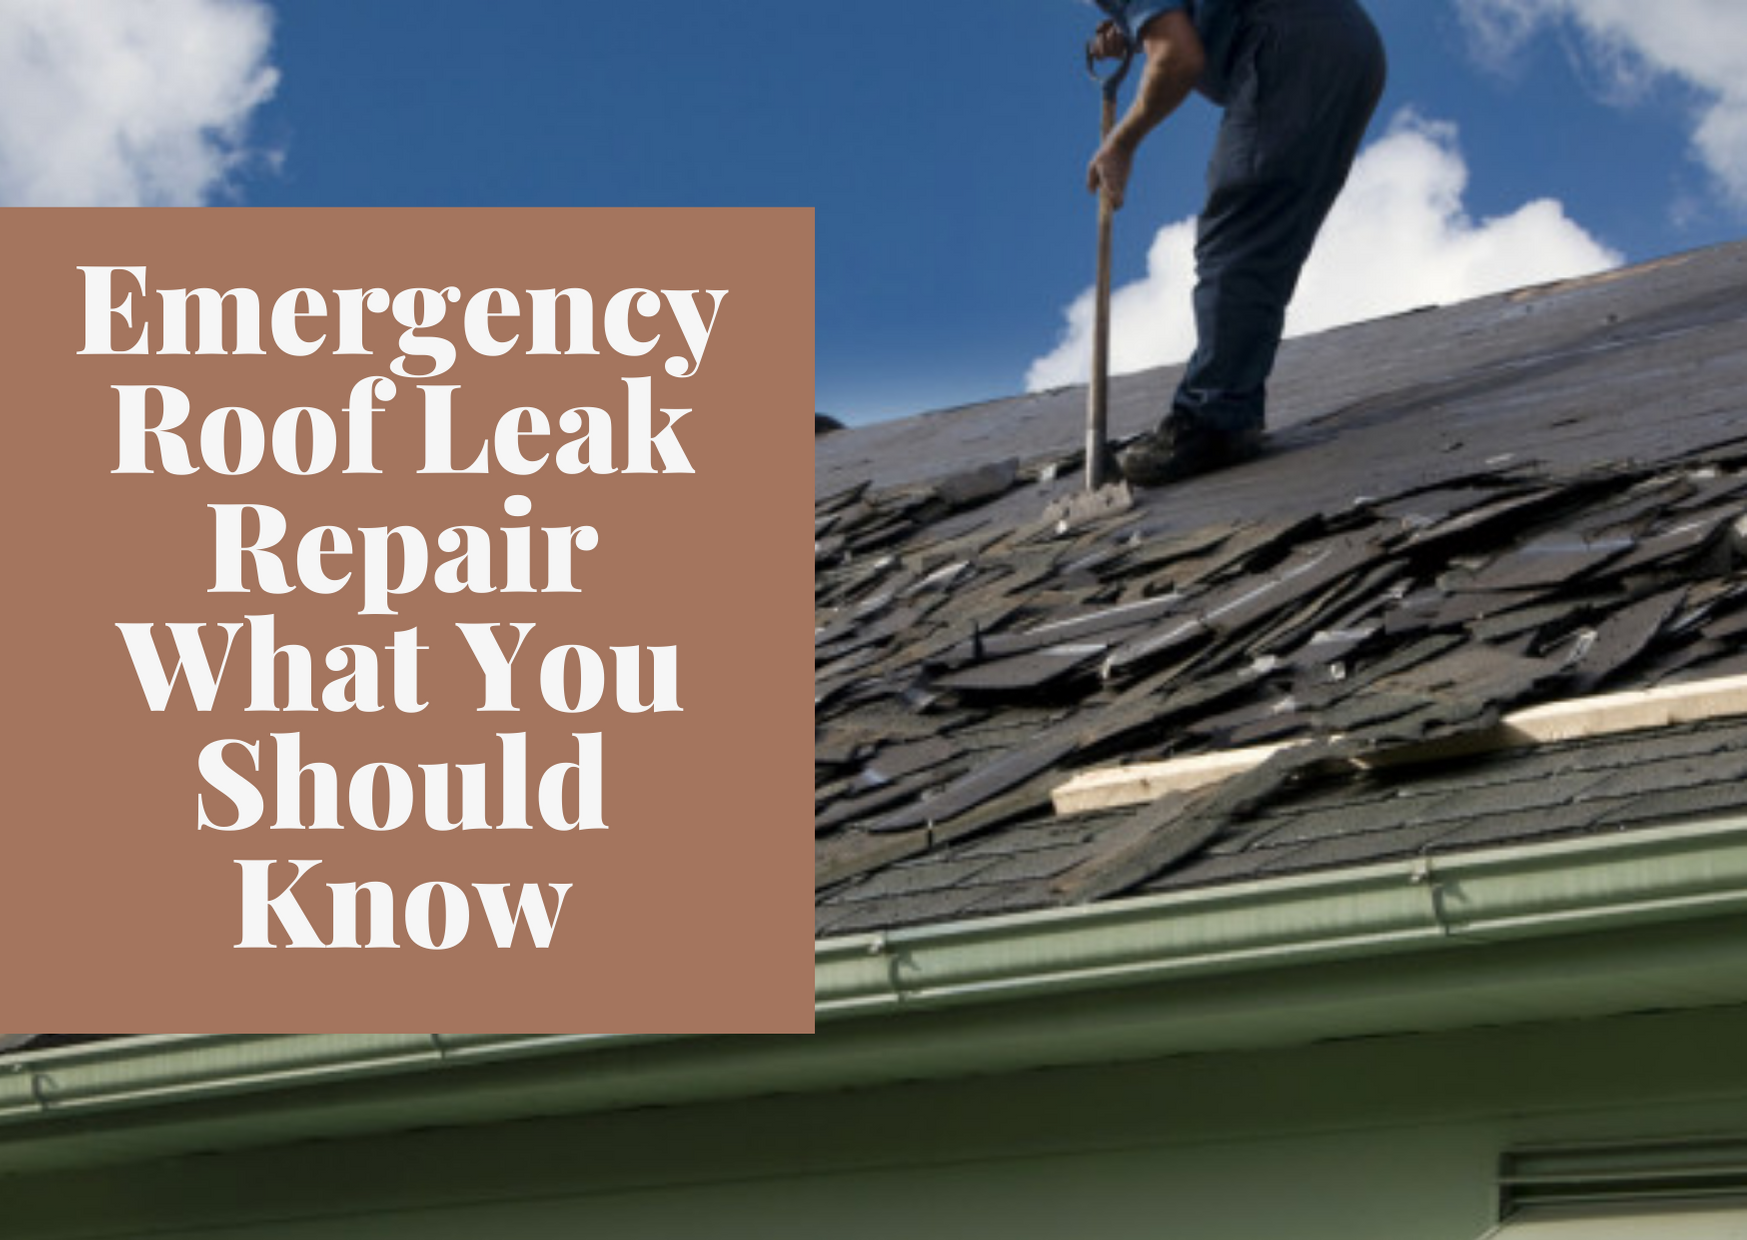 Emergency Roof Leak Repair What You Should Know